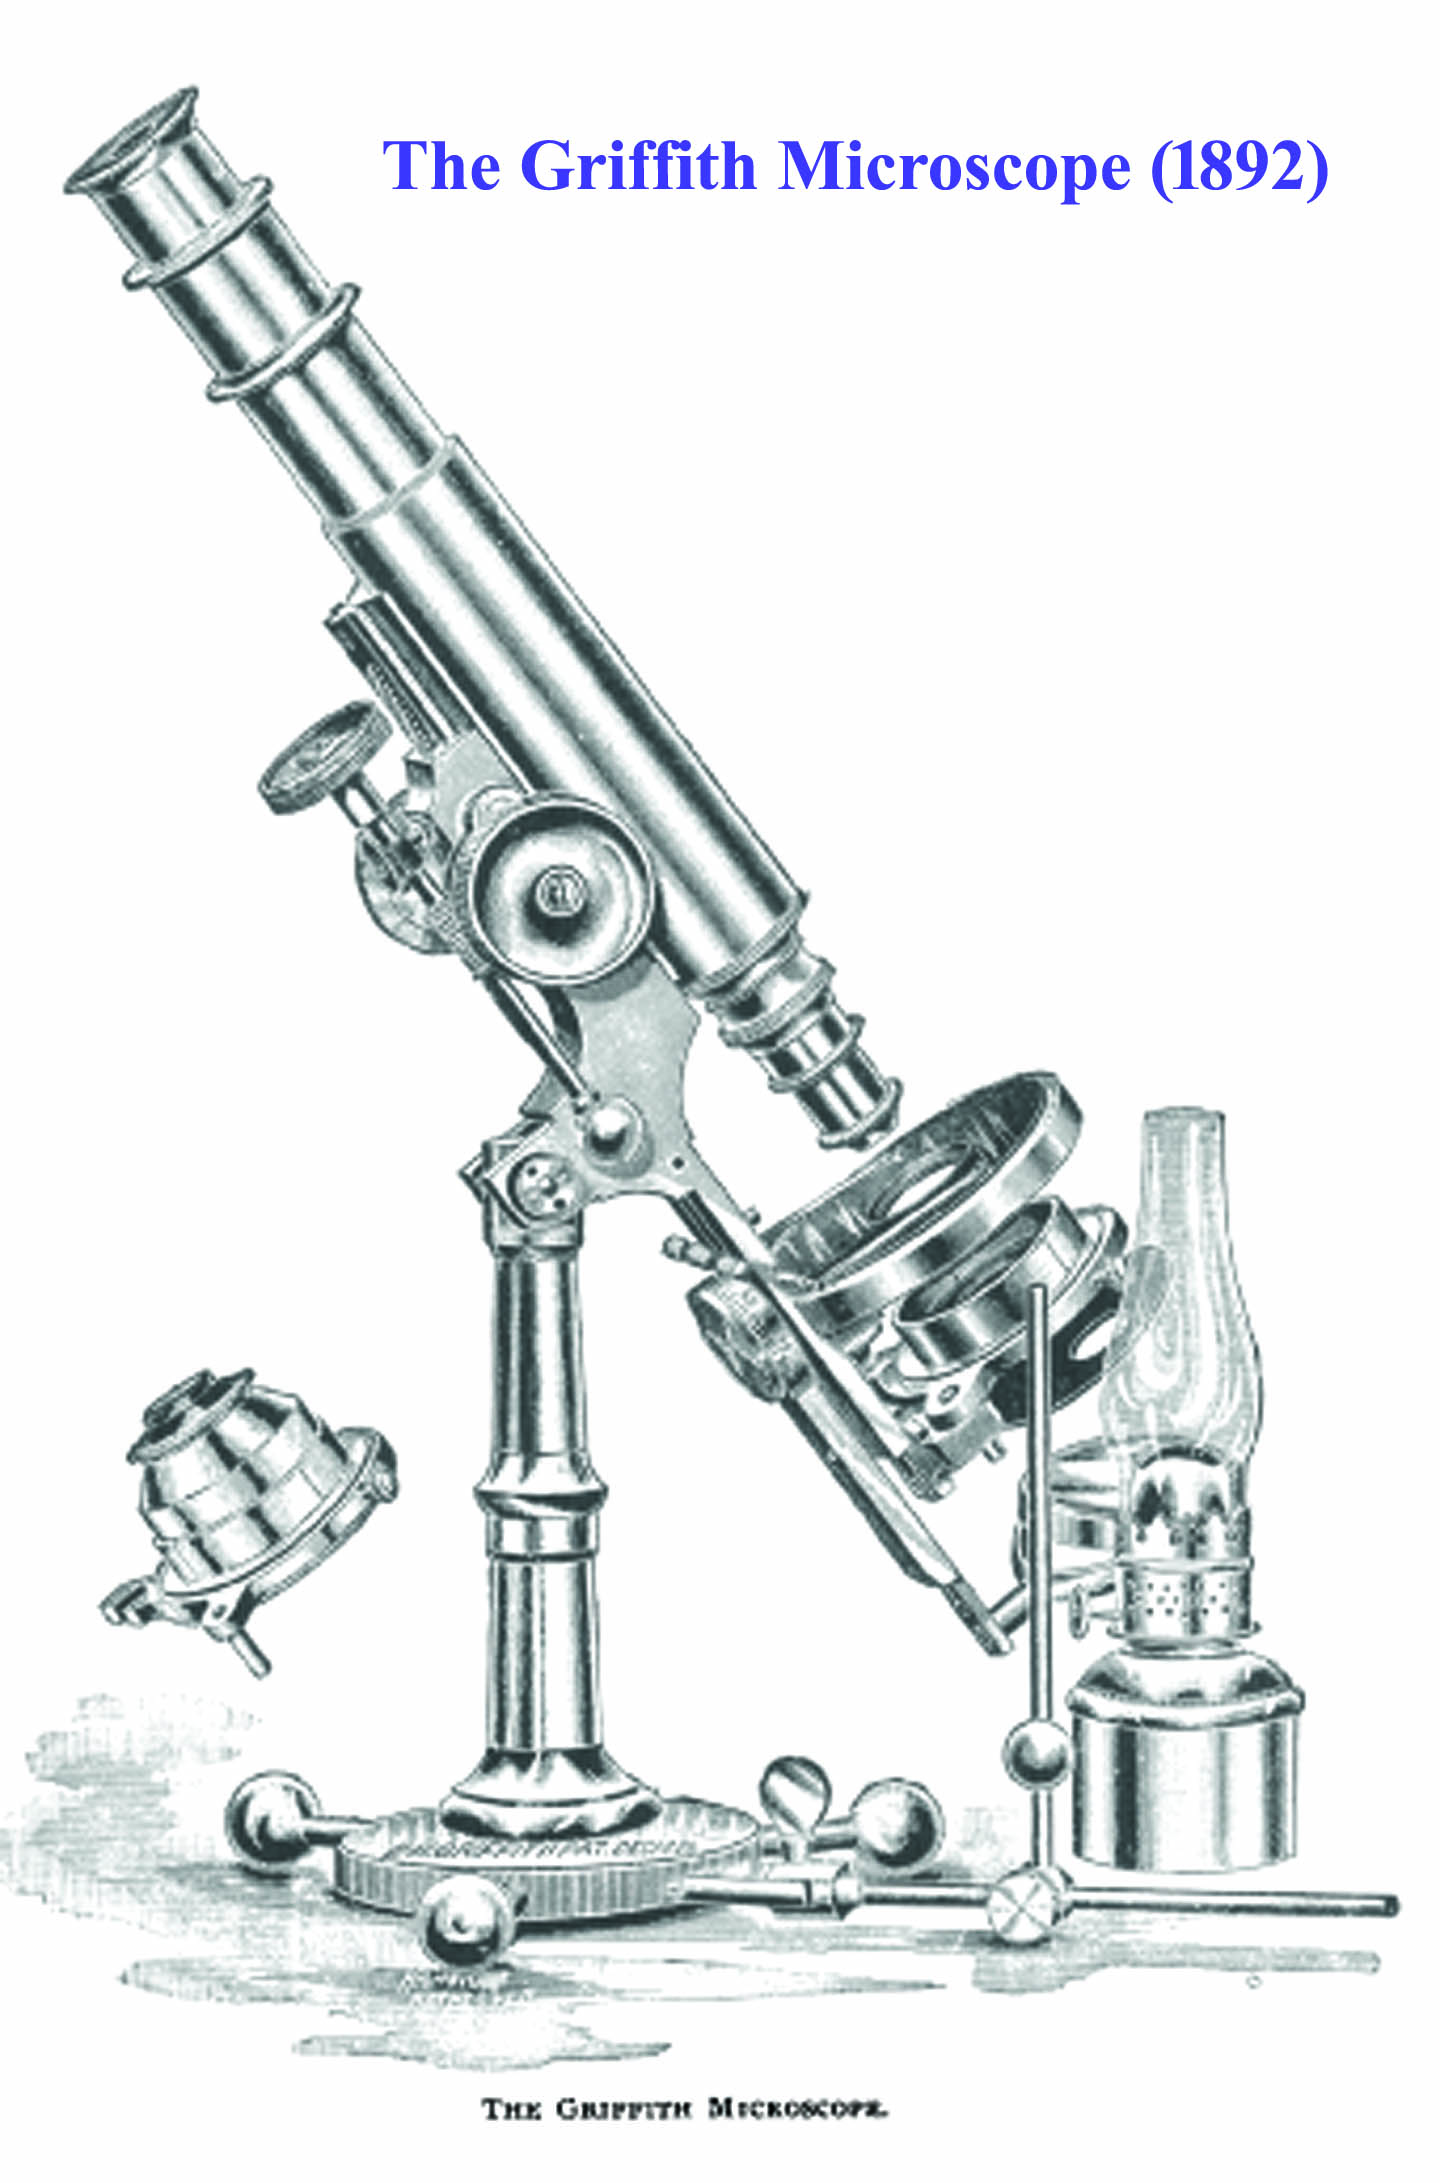 1892 Griffith Microscope